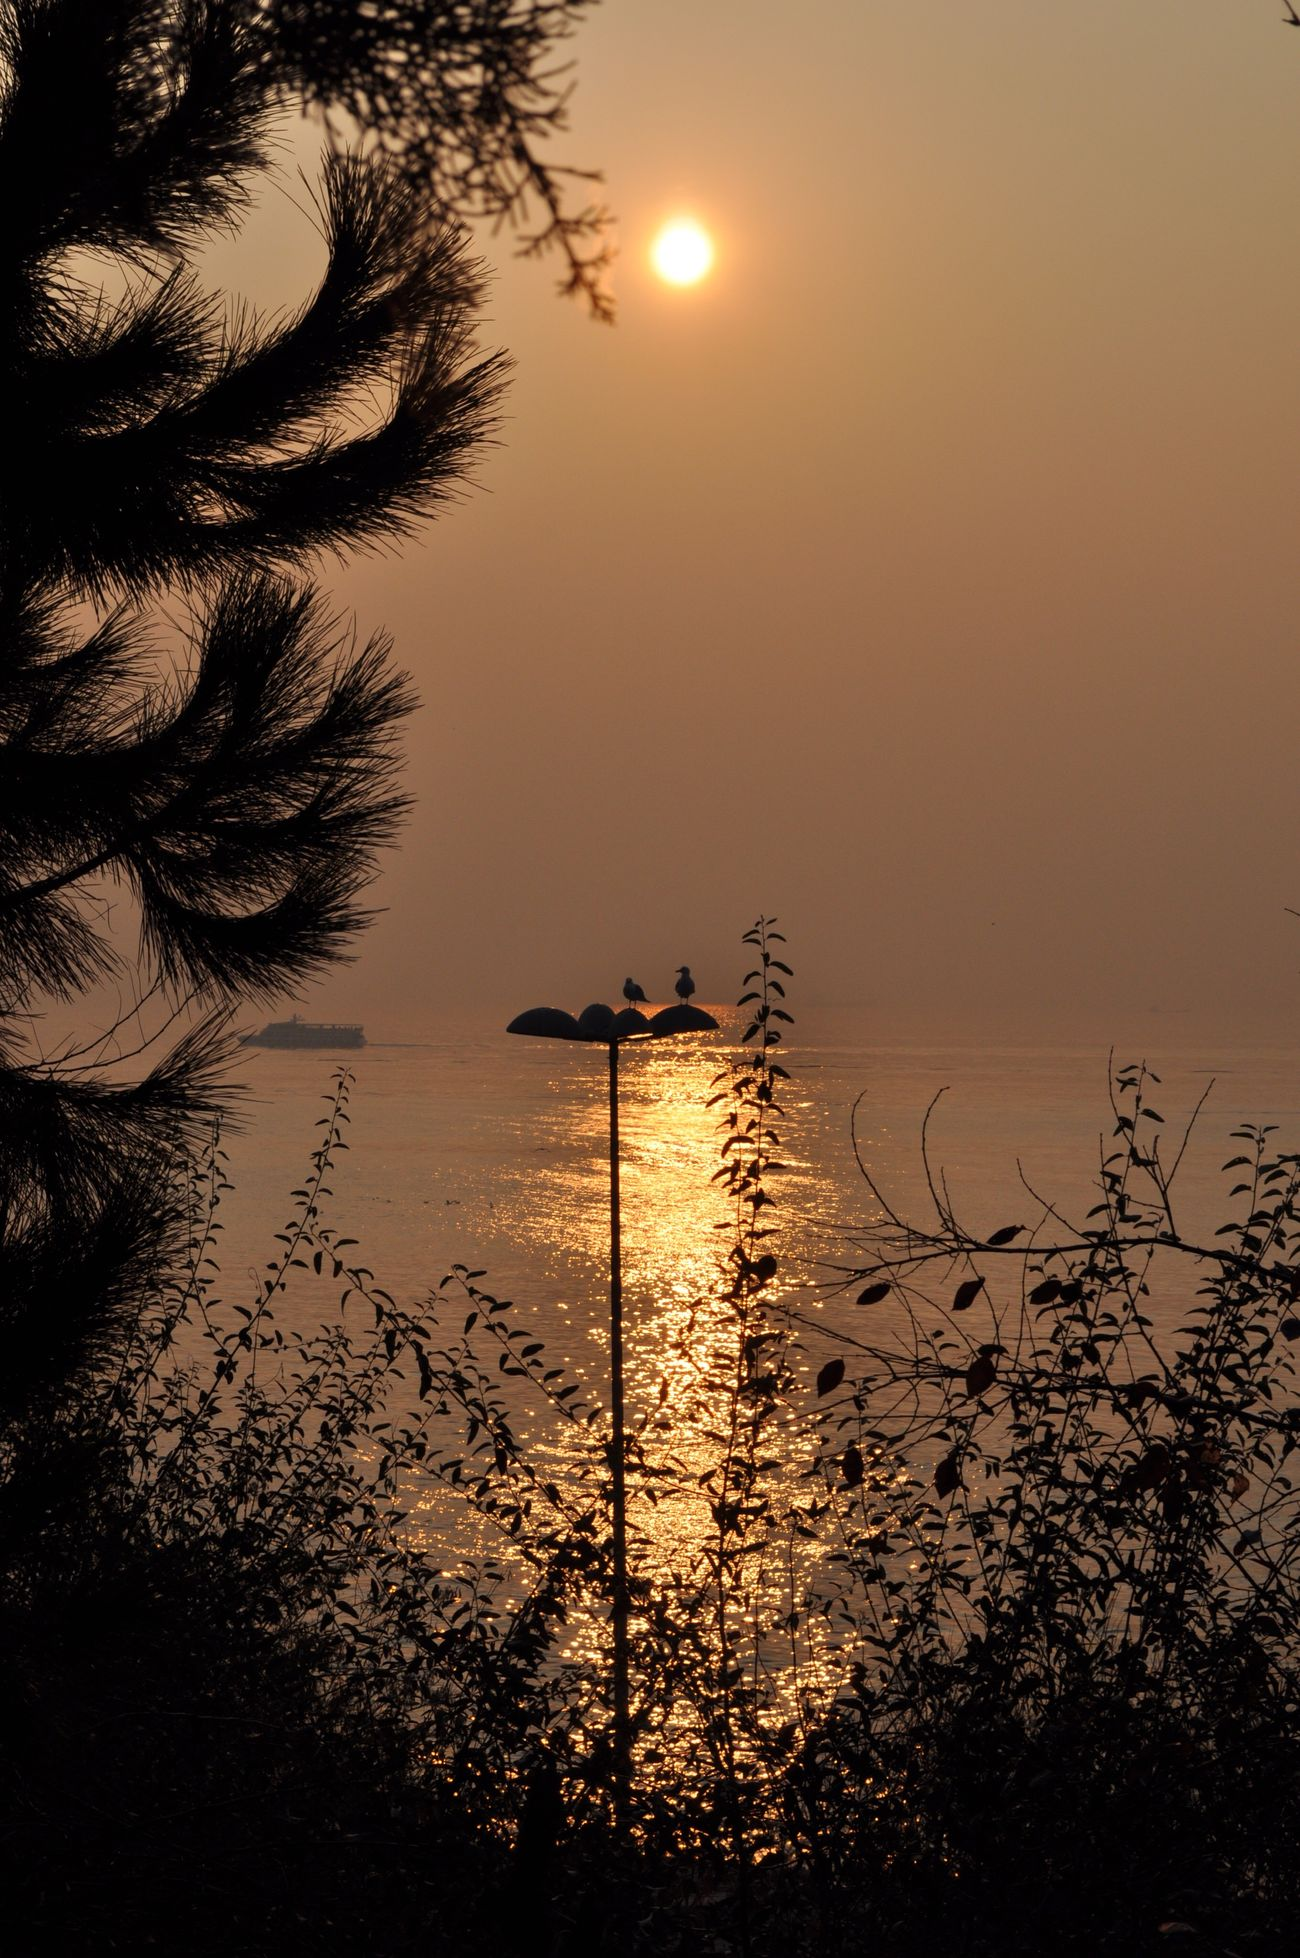 Sunset Water Nature Silhouette Reflection Scenics Tranquility Beauty In Nature Tree Tranquil Scene Sea Beach Outdoors No People Sky